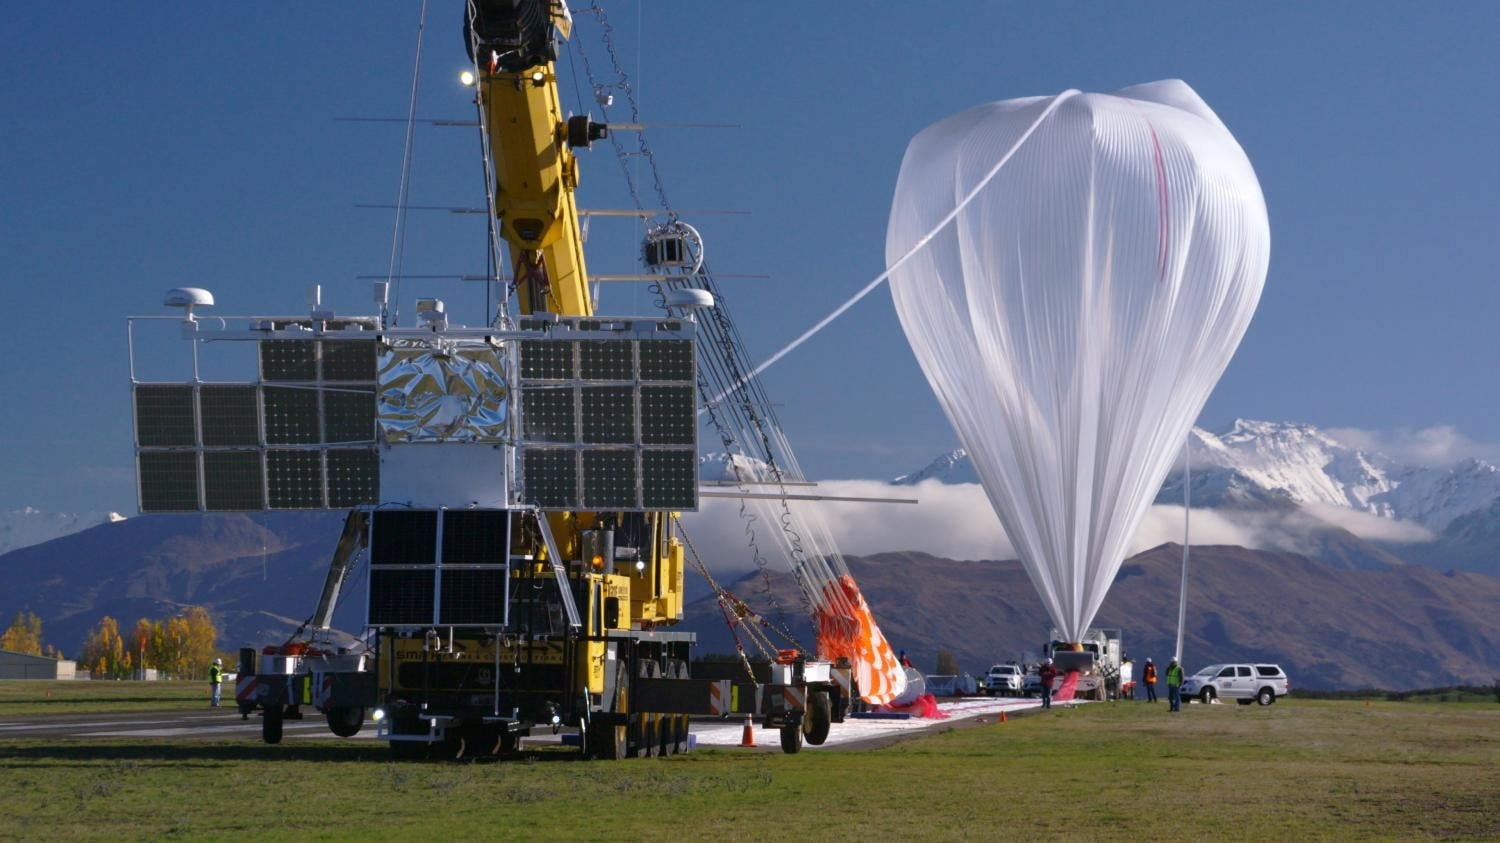 NASA's high-flying scientific balloon has just set a world record